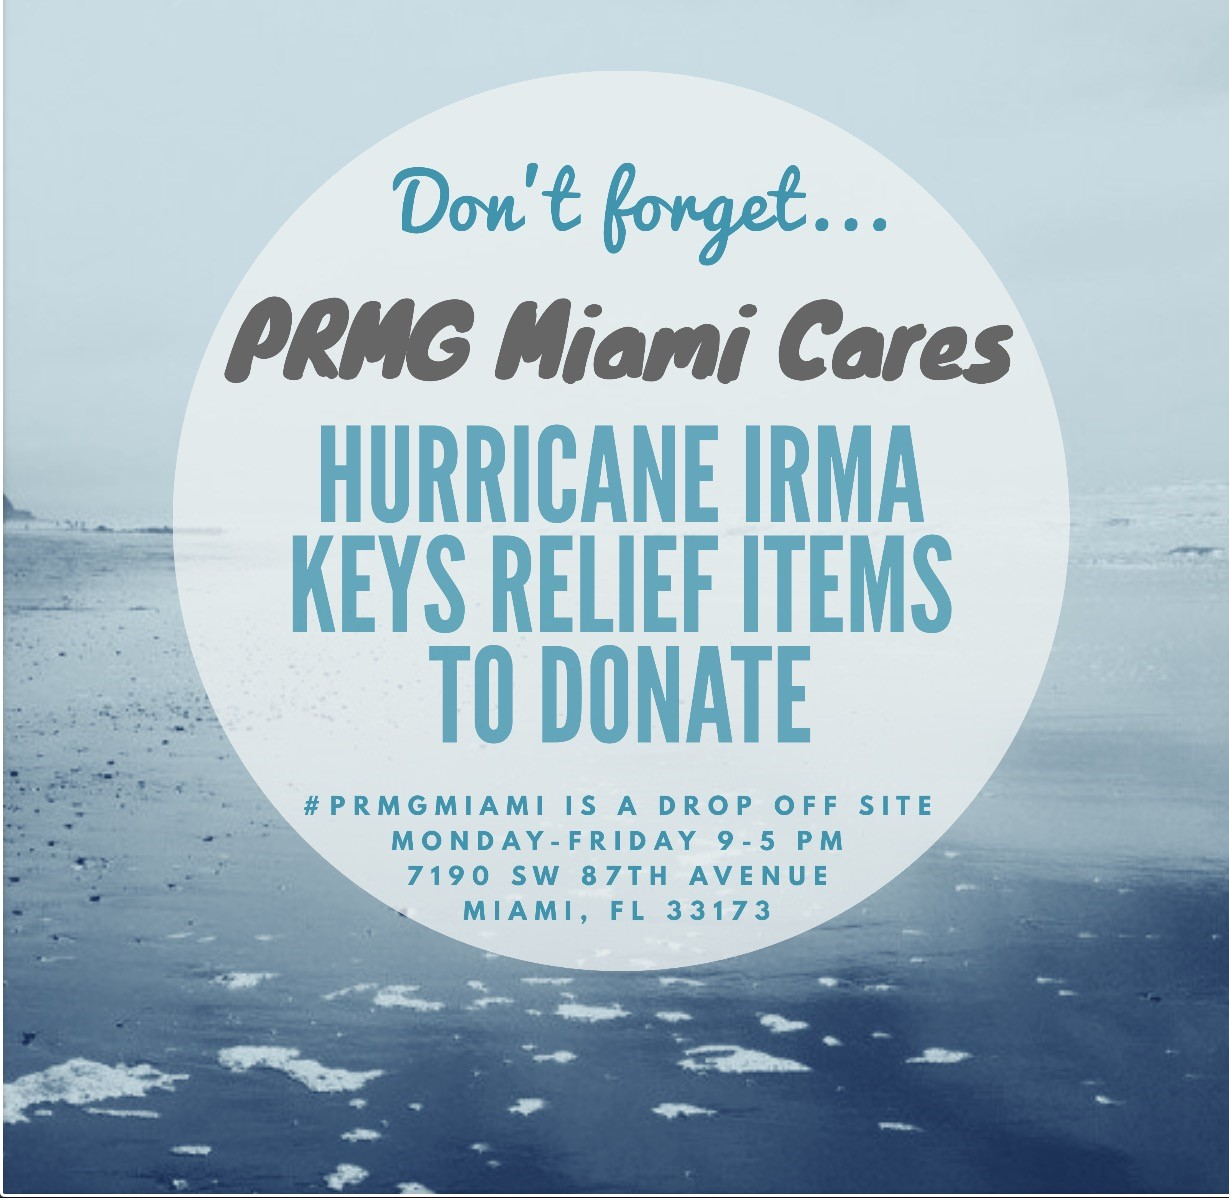 PRMG Miami: Hurricane Relief Efforts